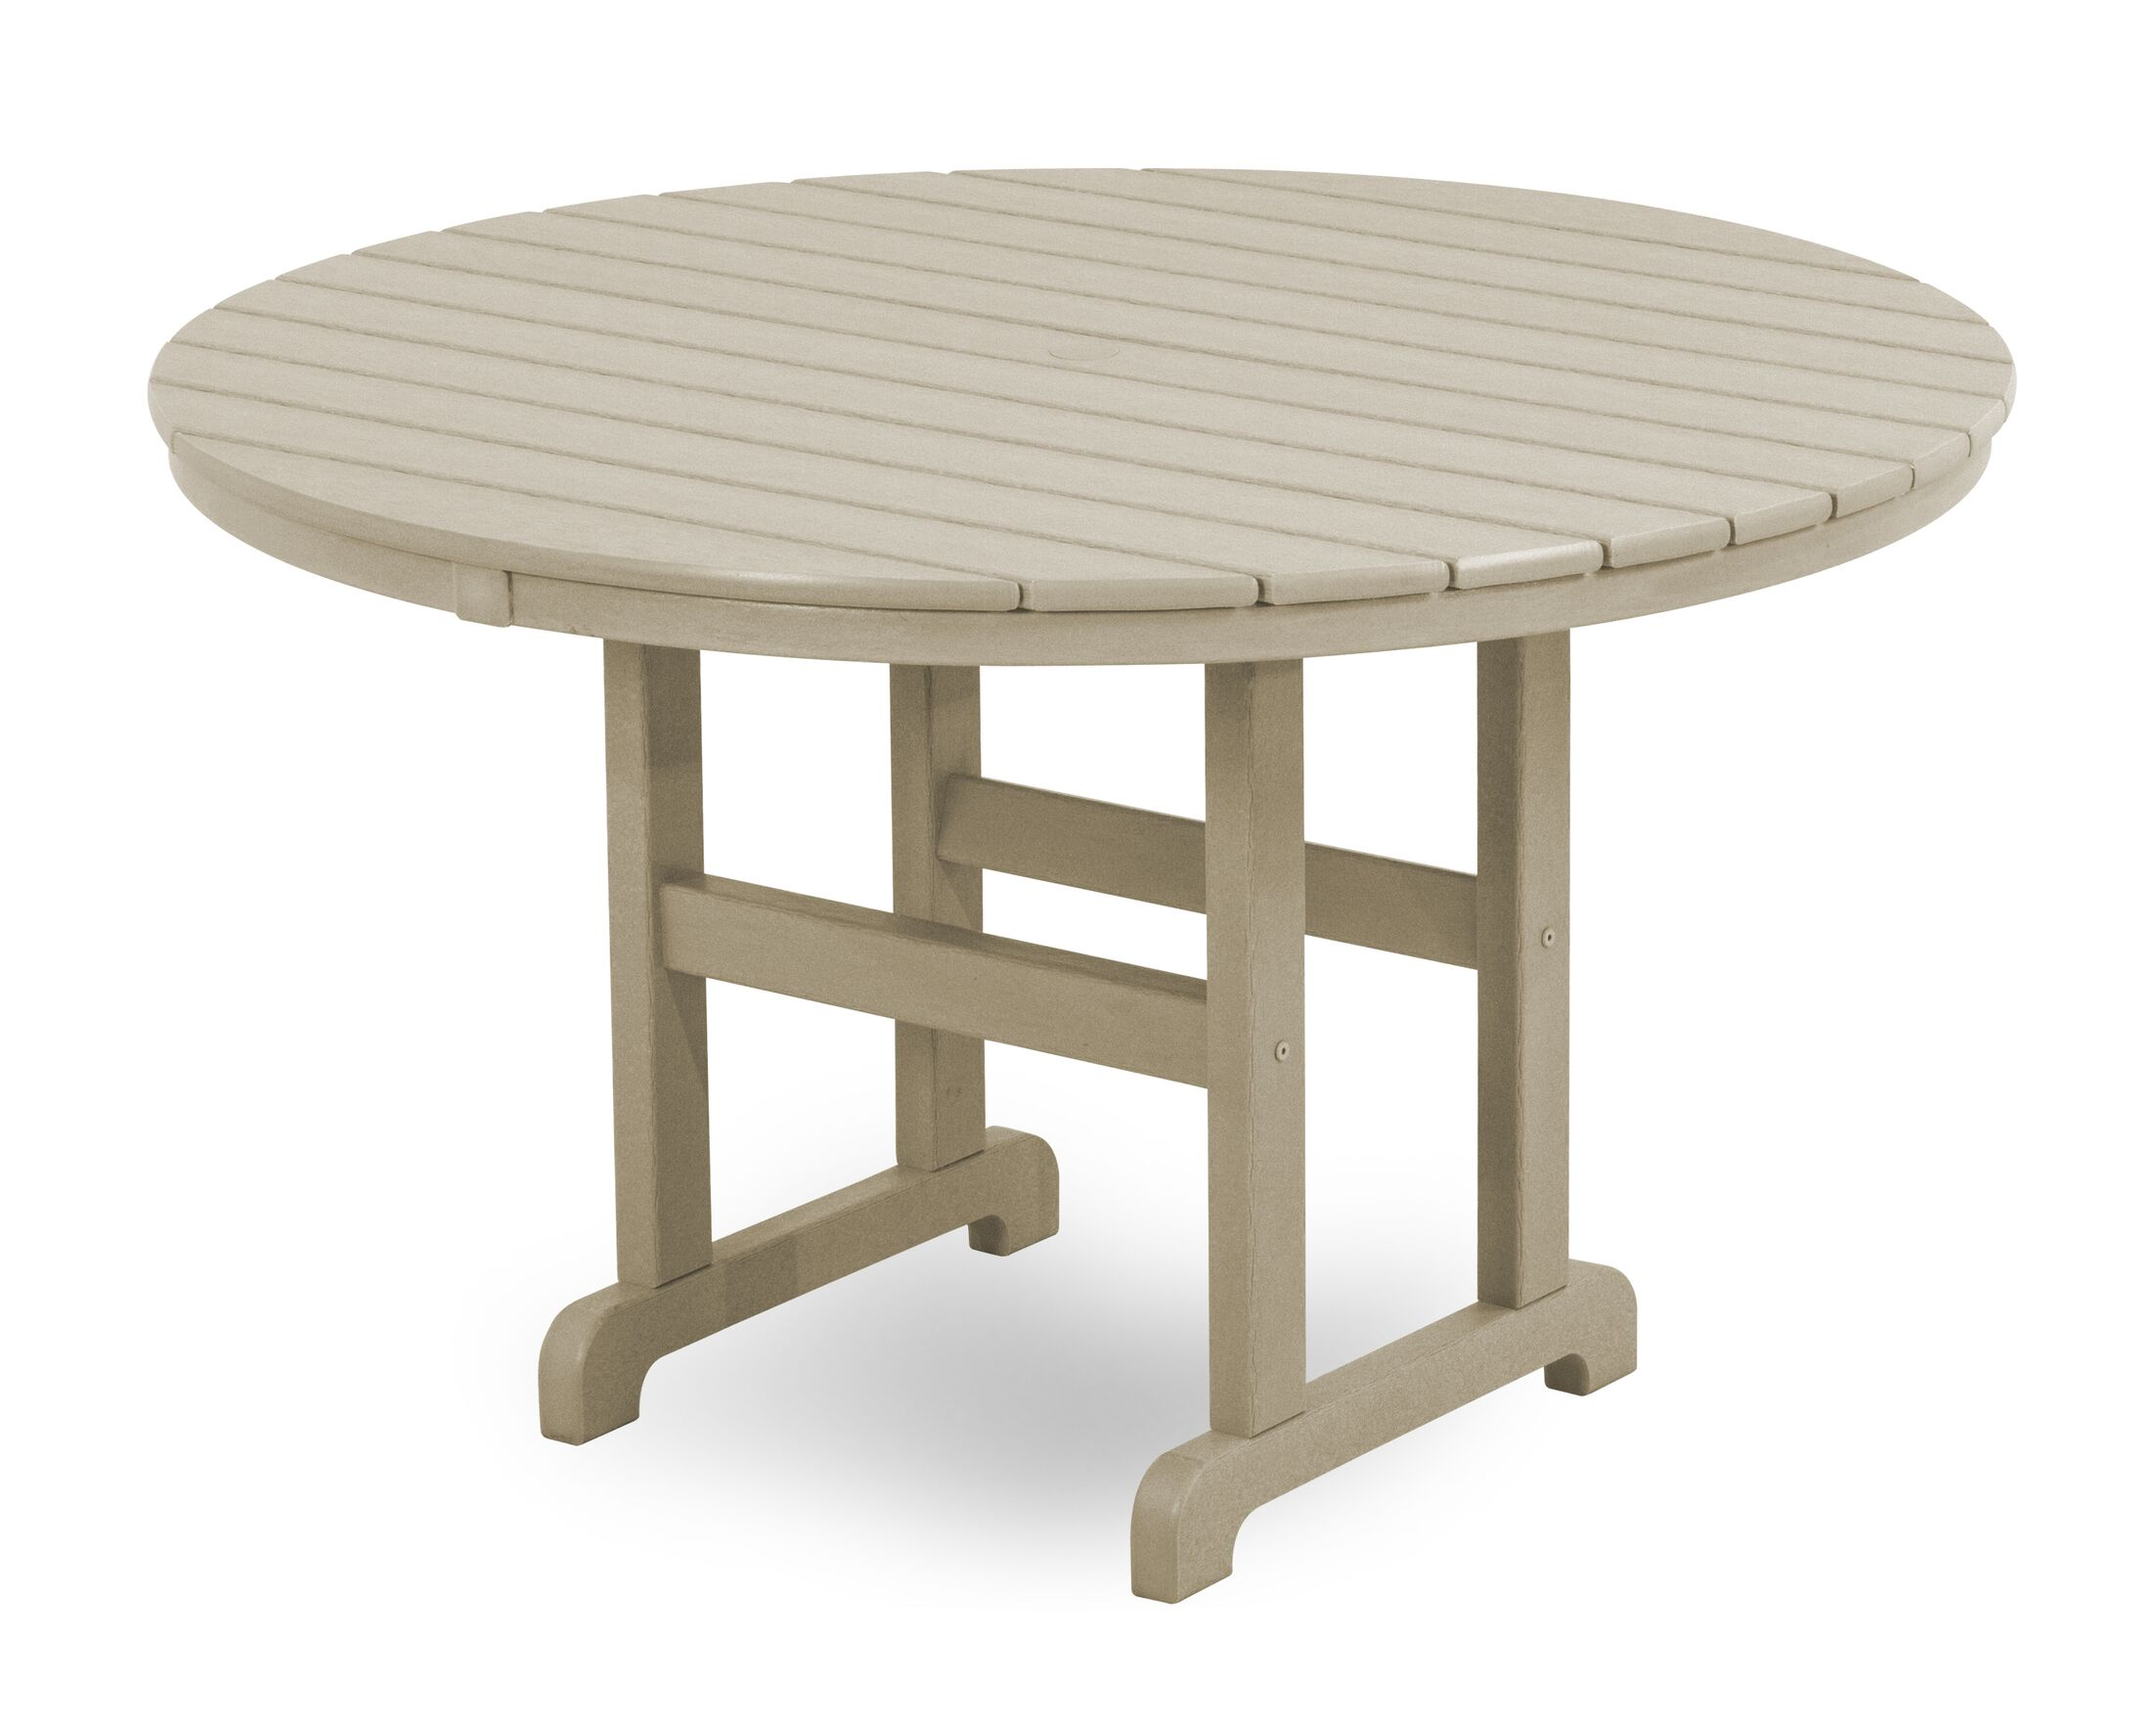 Round Dining Table Finish: Sand, Table Size: 36